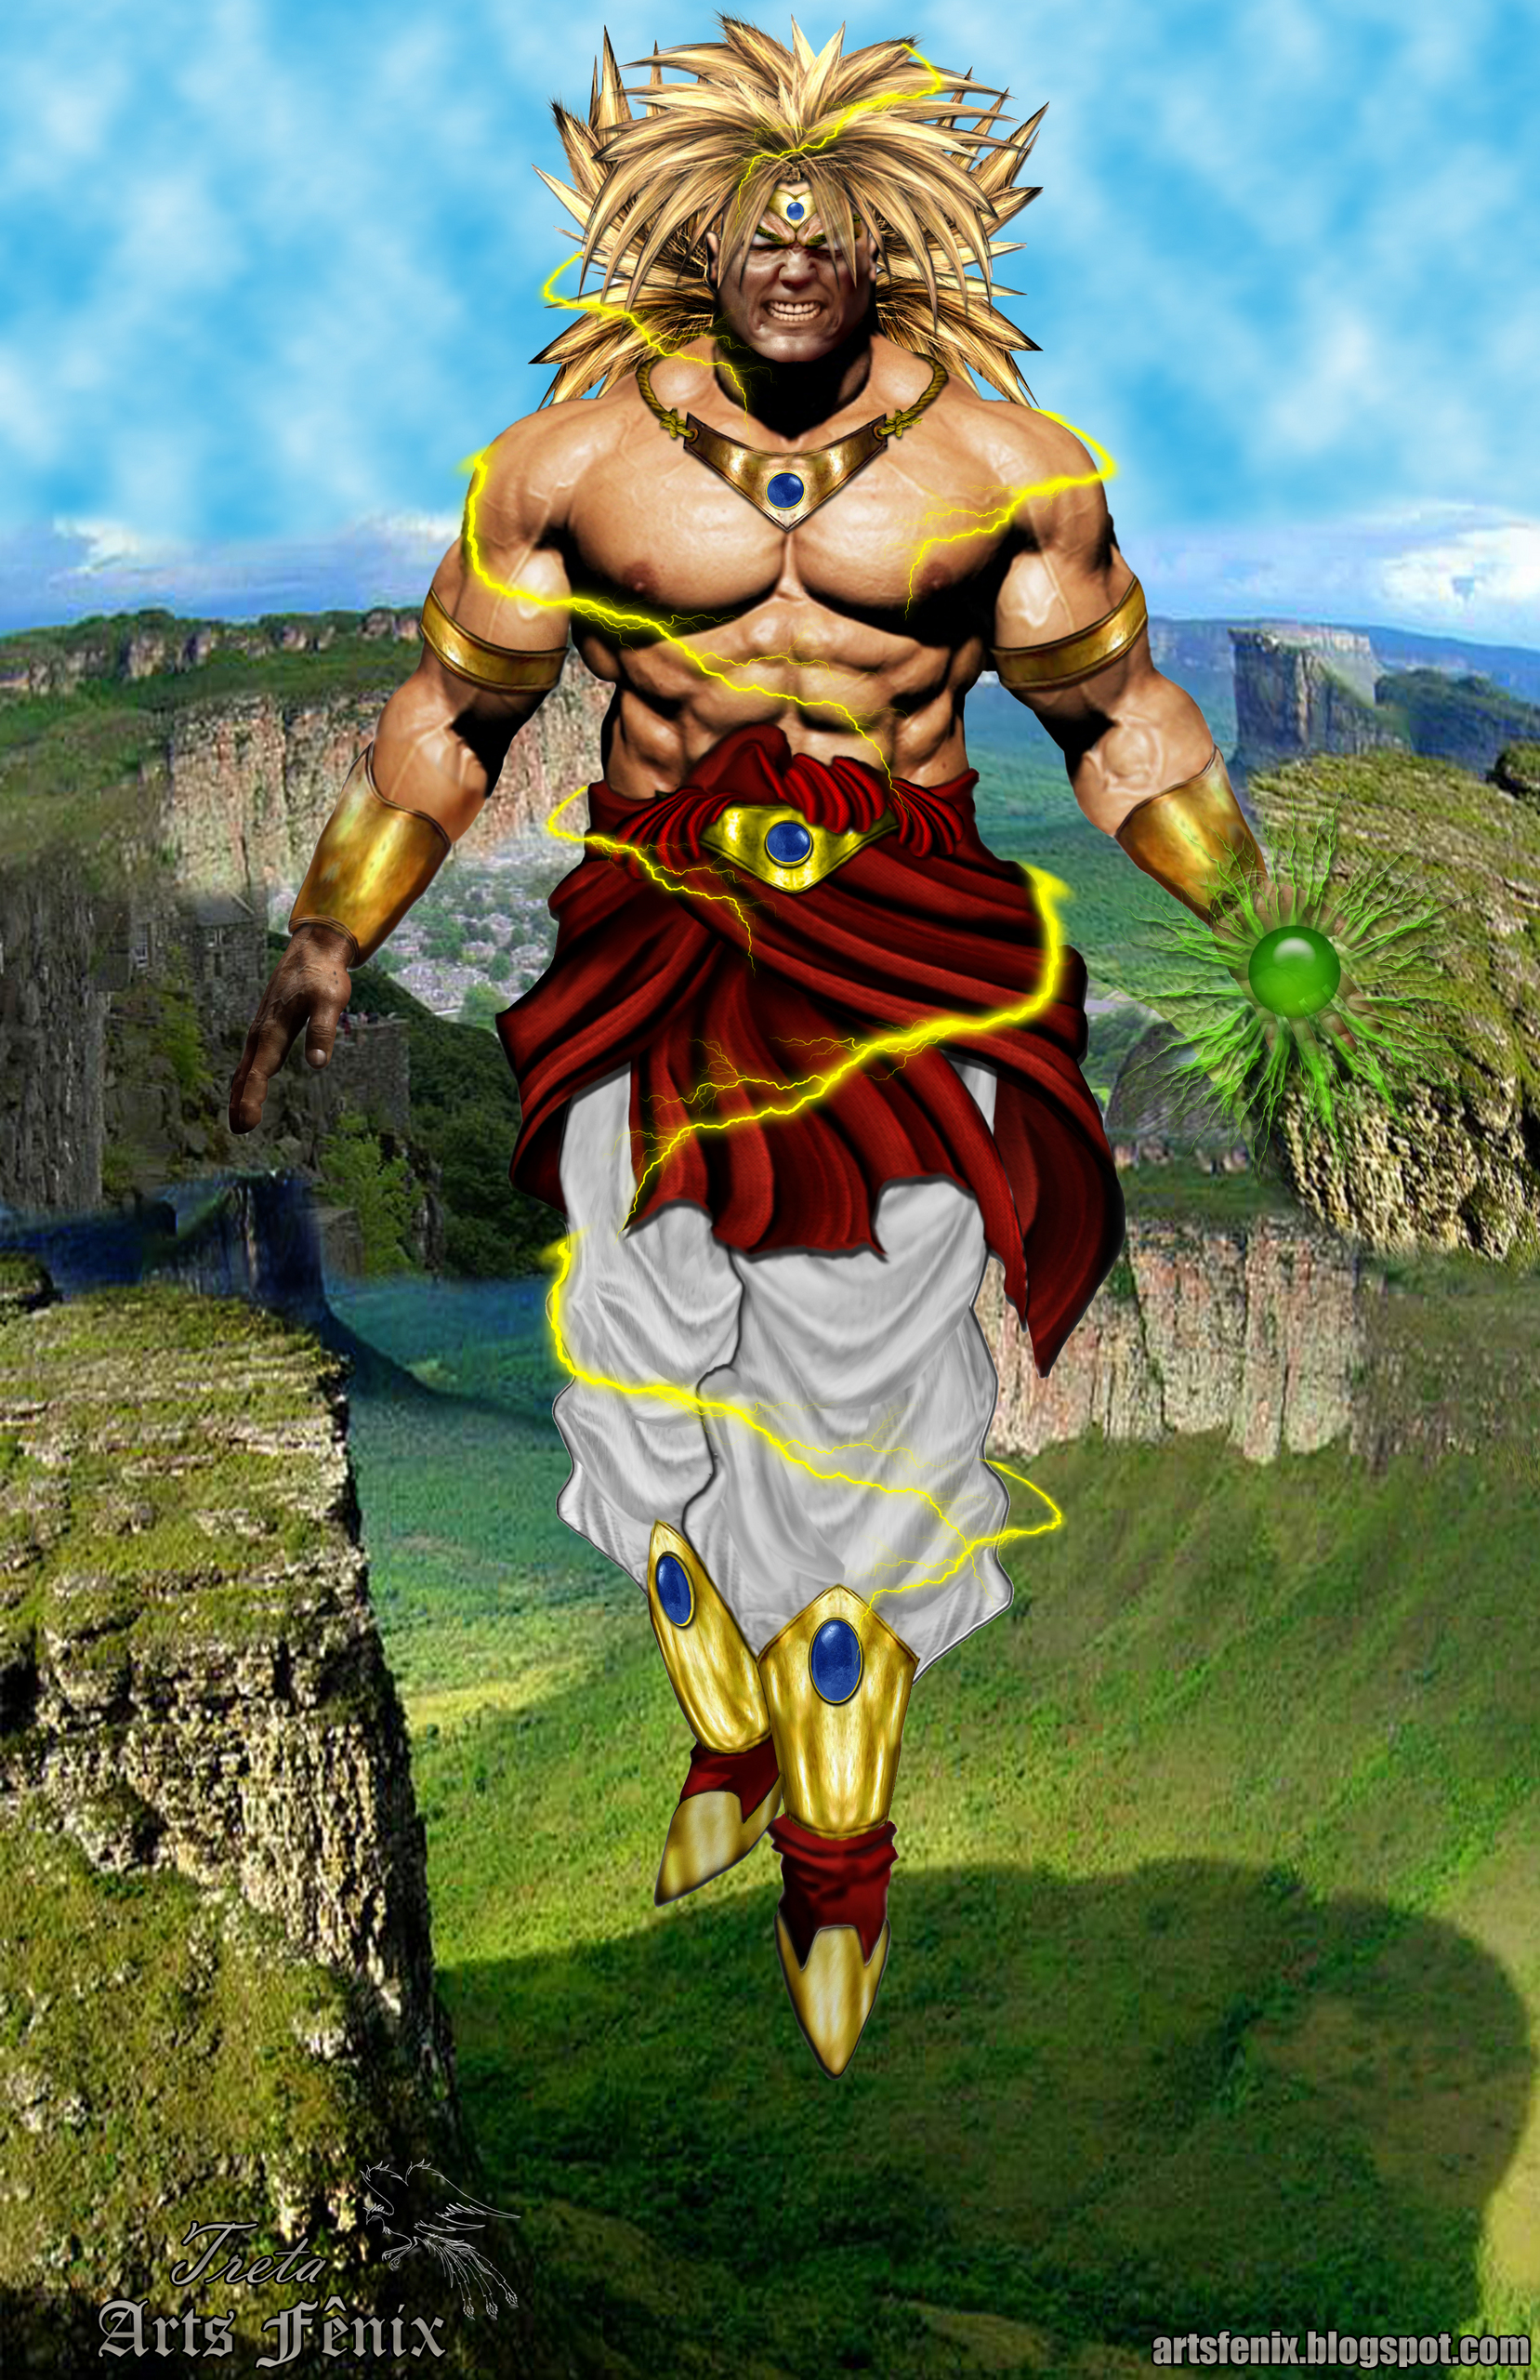 Dragon Ball Z Images Broly Real Hd Wallpaper And Background Photos